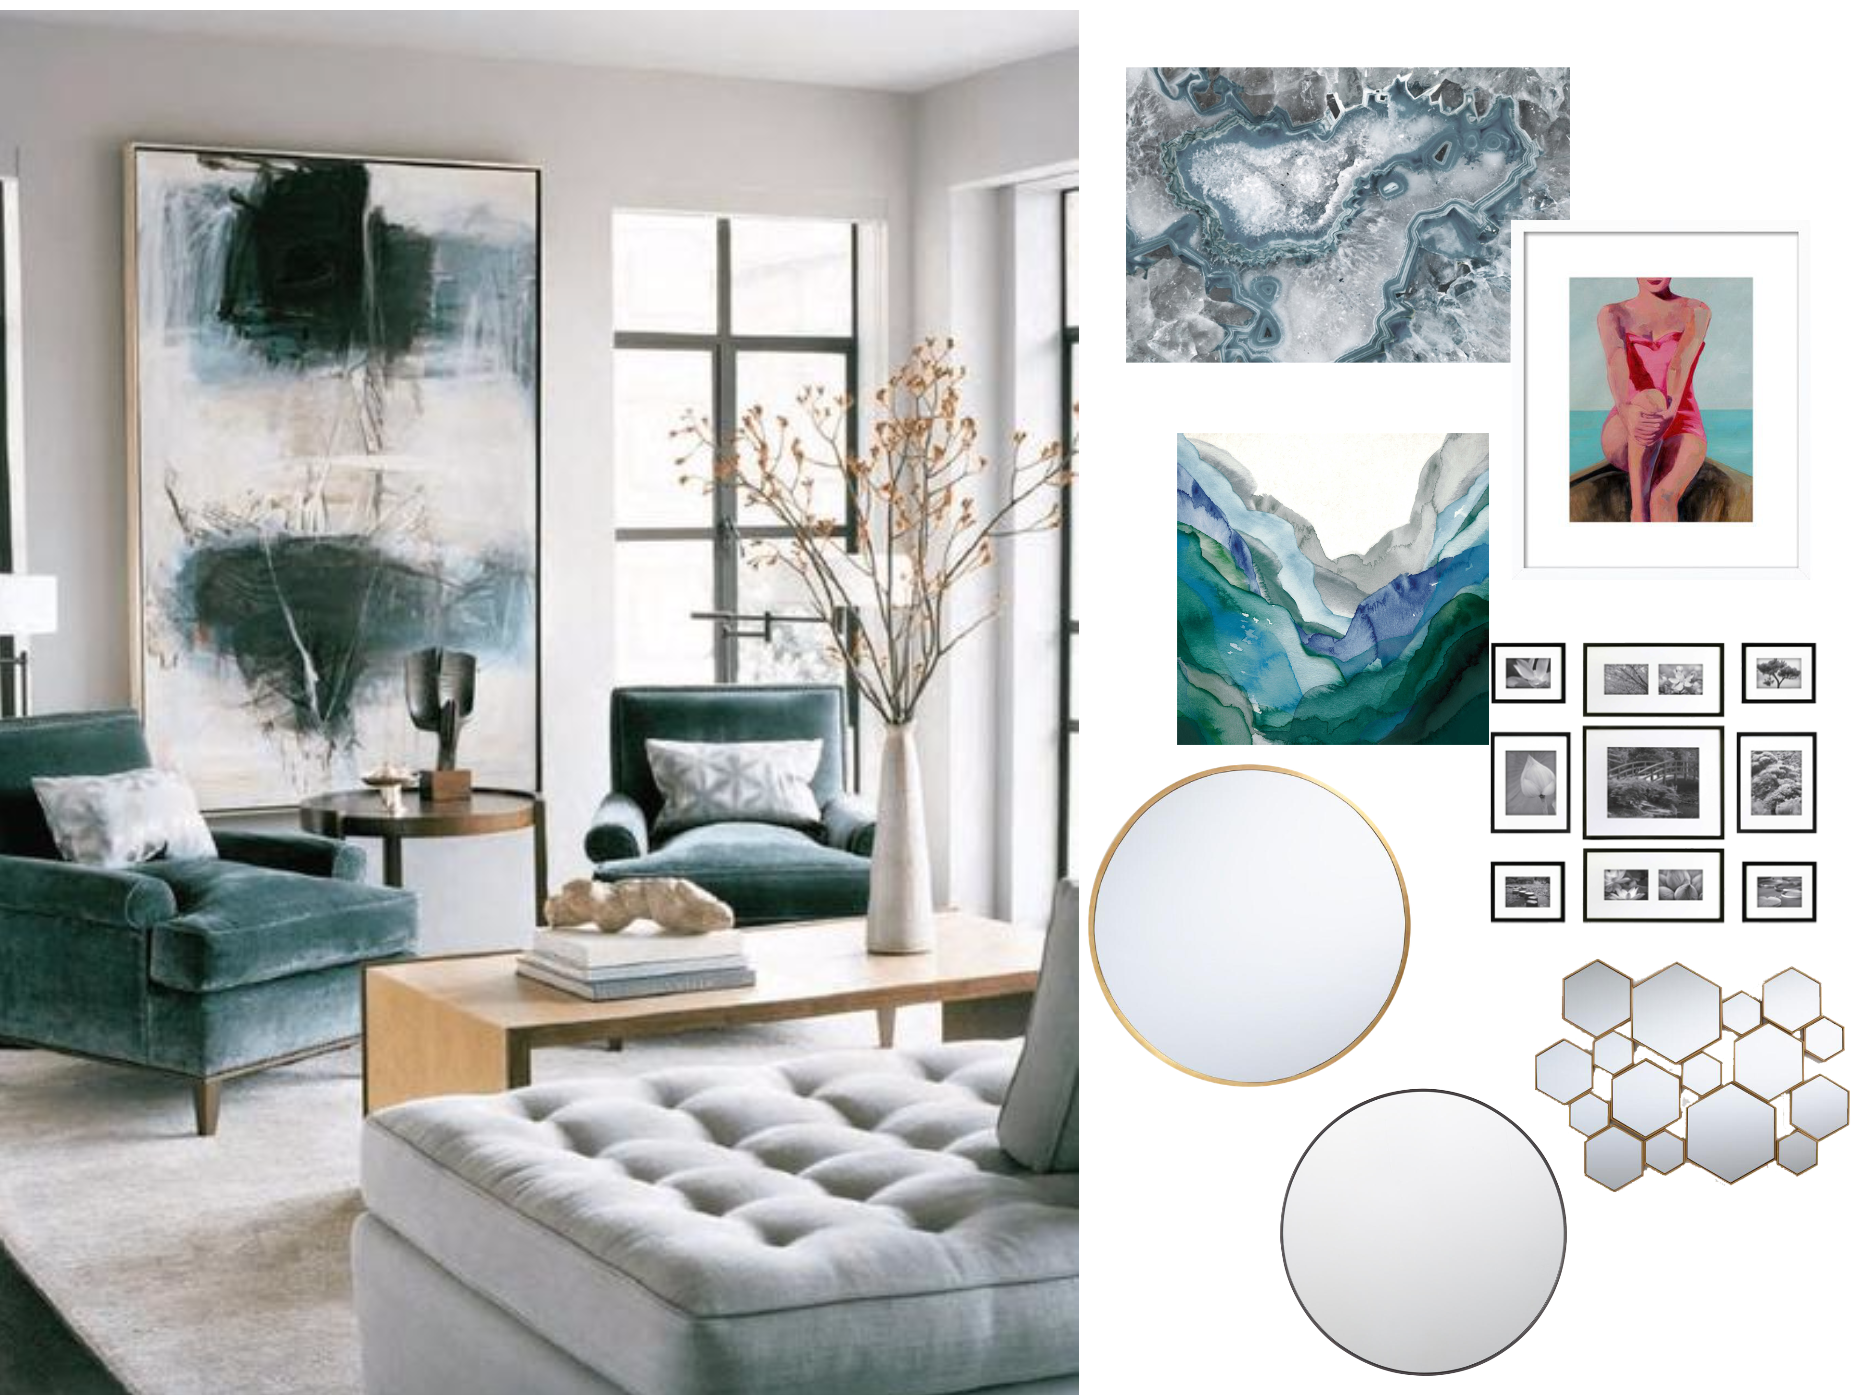 Online interior design Q&A for free from our designers   Decorist